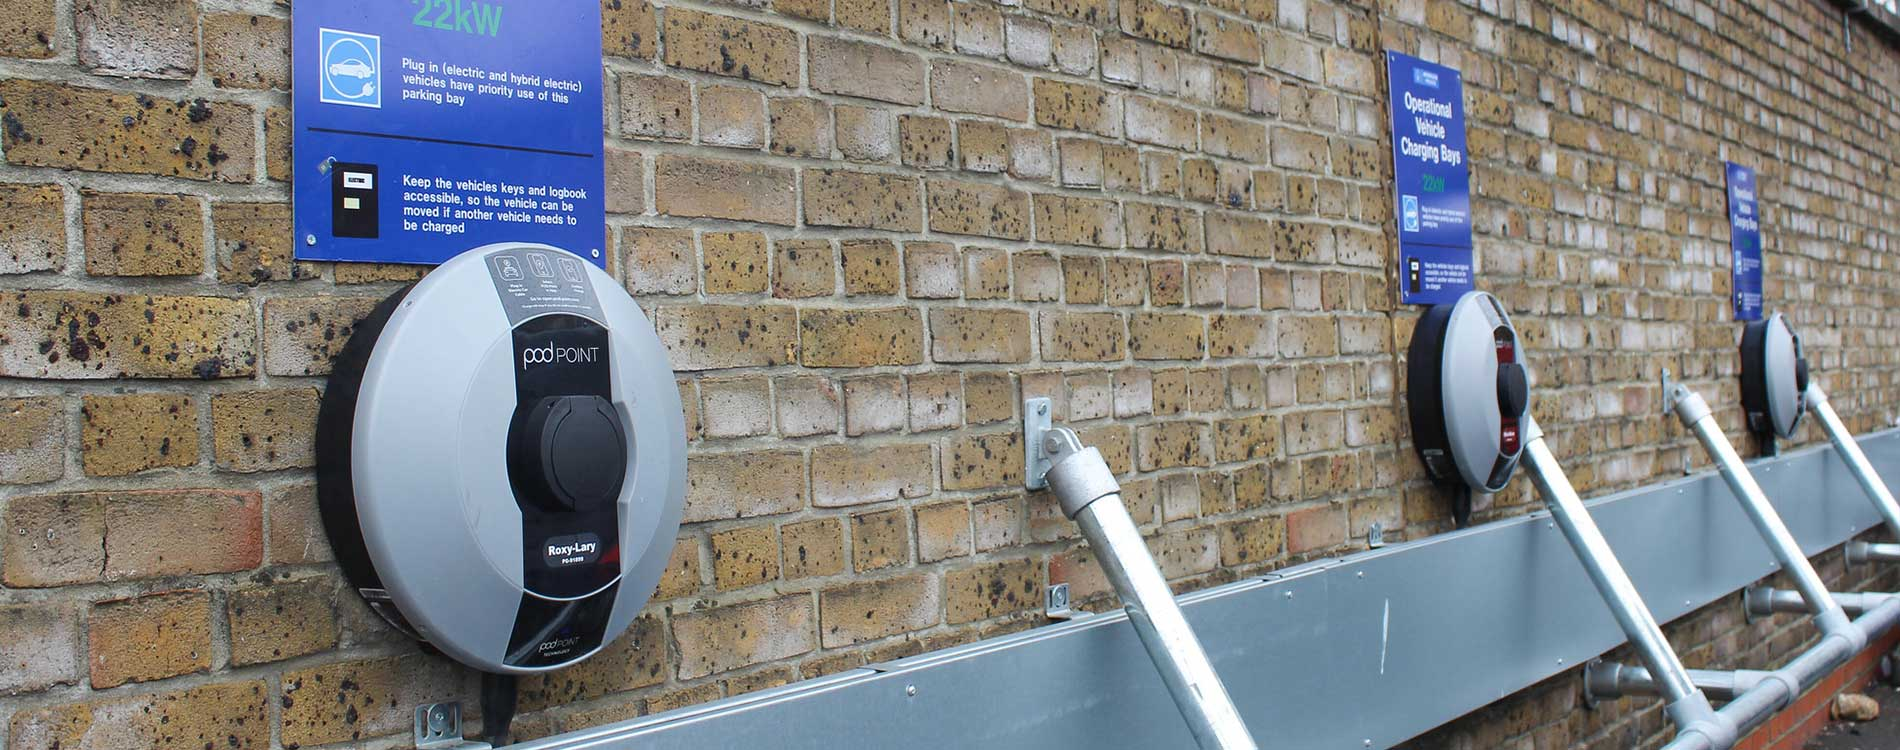 Met-police-electric vehicle charging ports against a brick wall